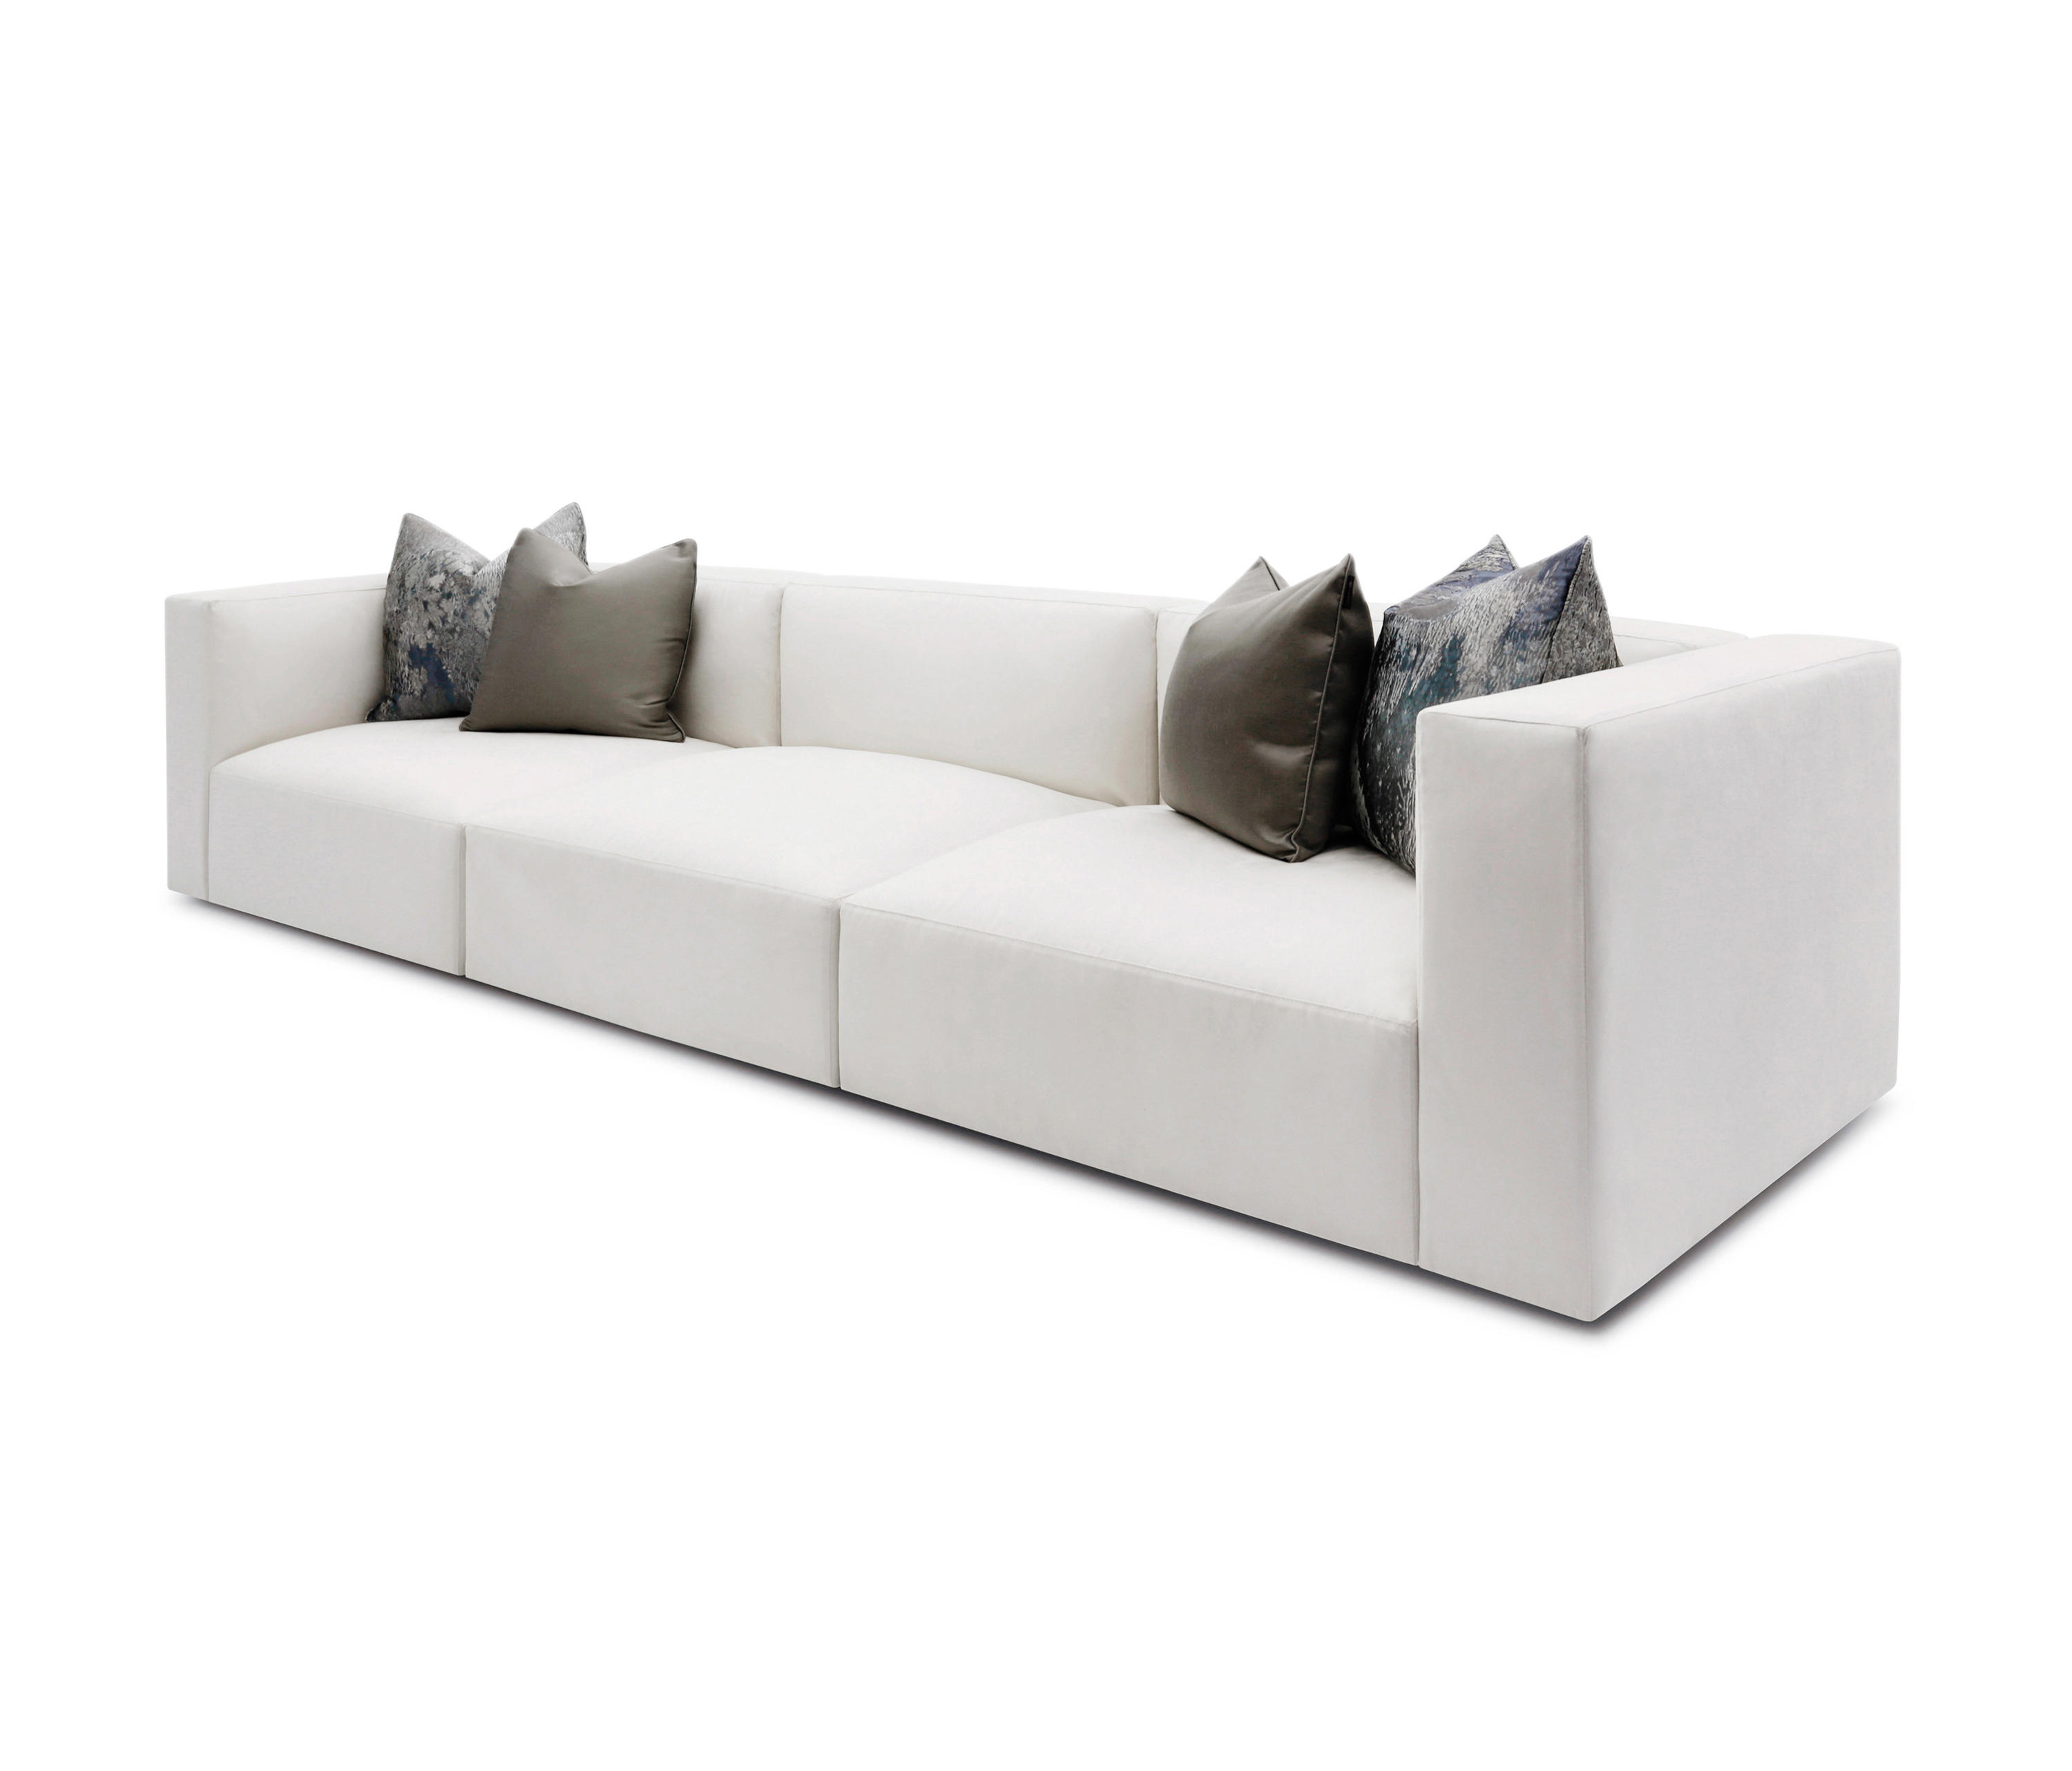 Hayward sofa canap s d 39 attente de the sofa chair for The canape company